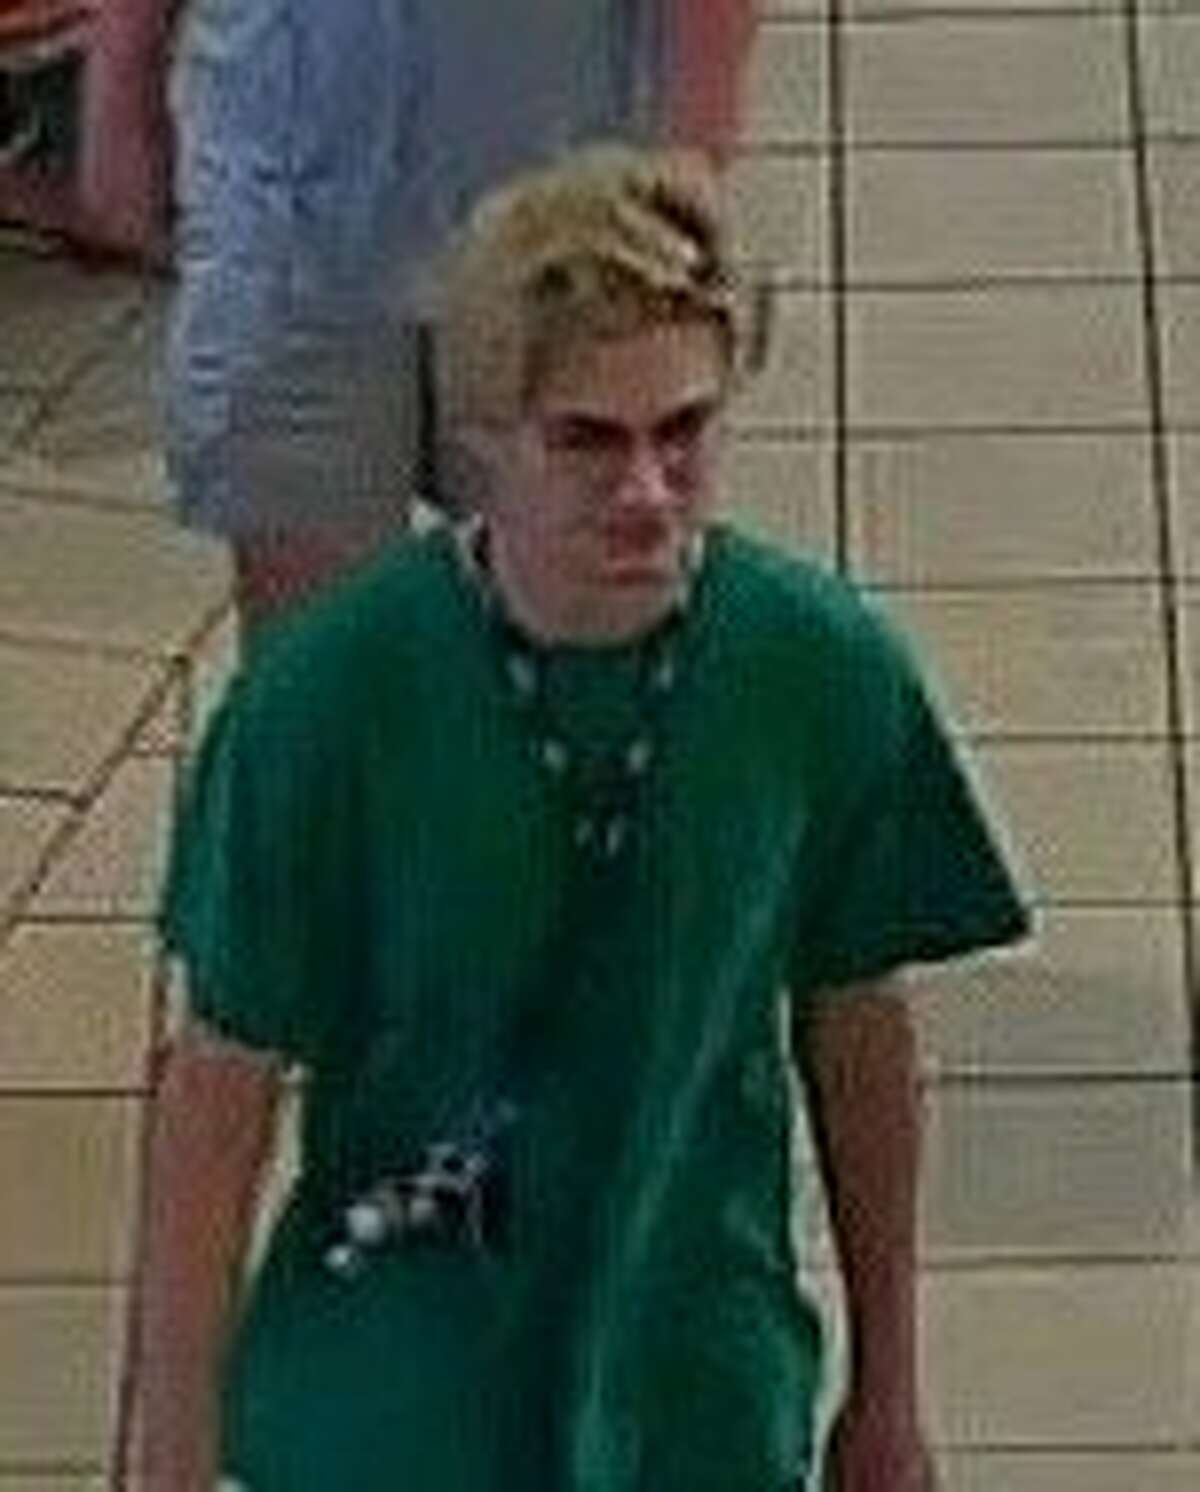 Police released this image Monday of a person of interest related to the panic at Memorial City Mall over the weekend.